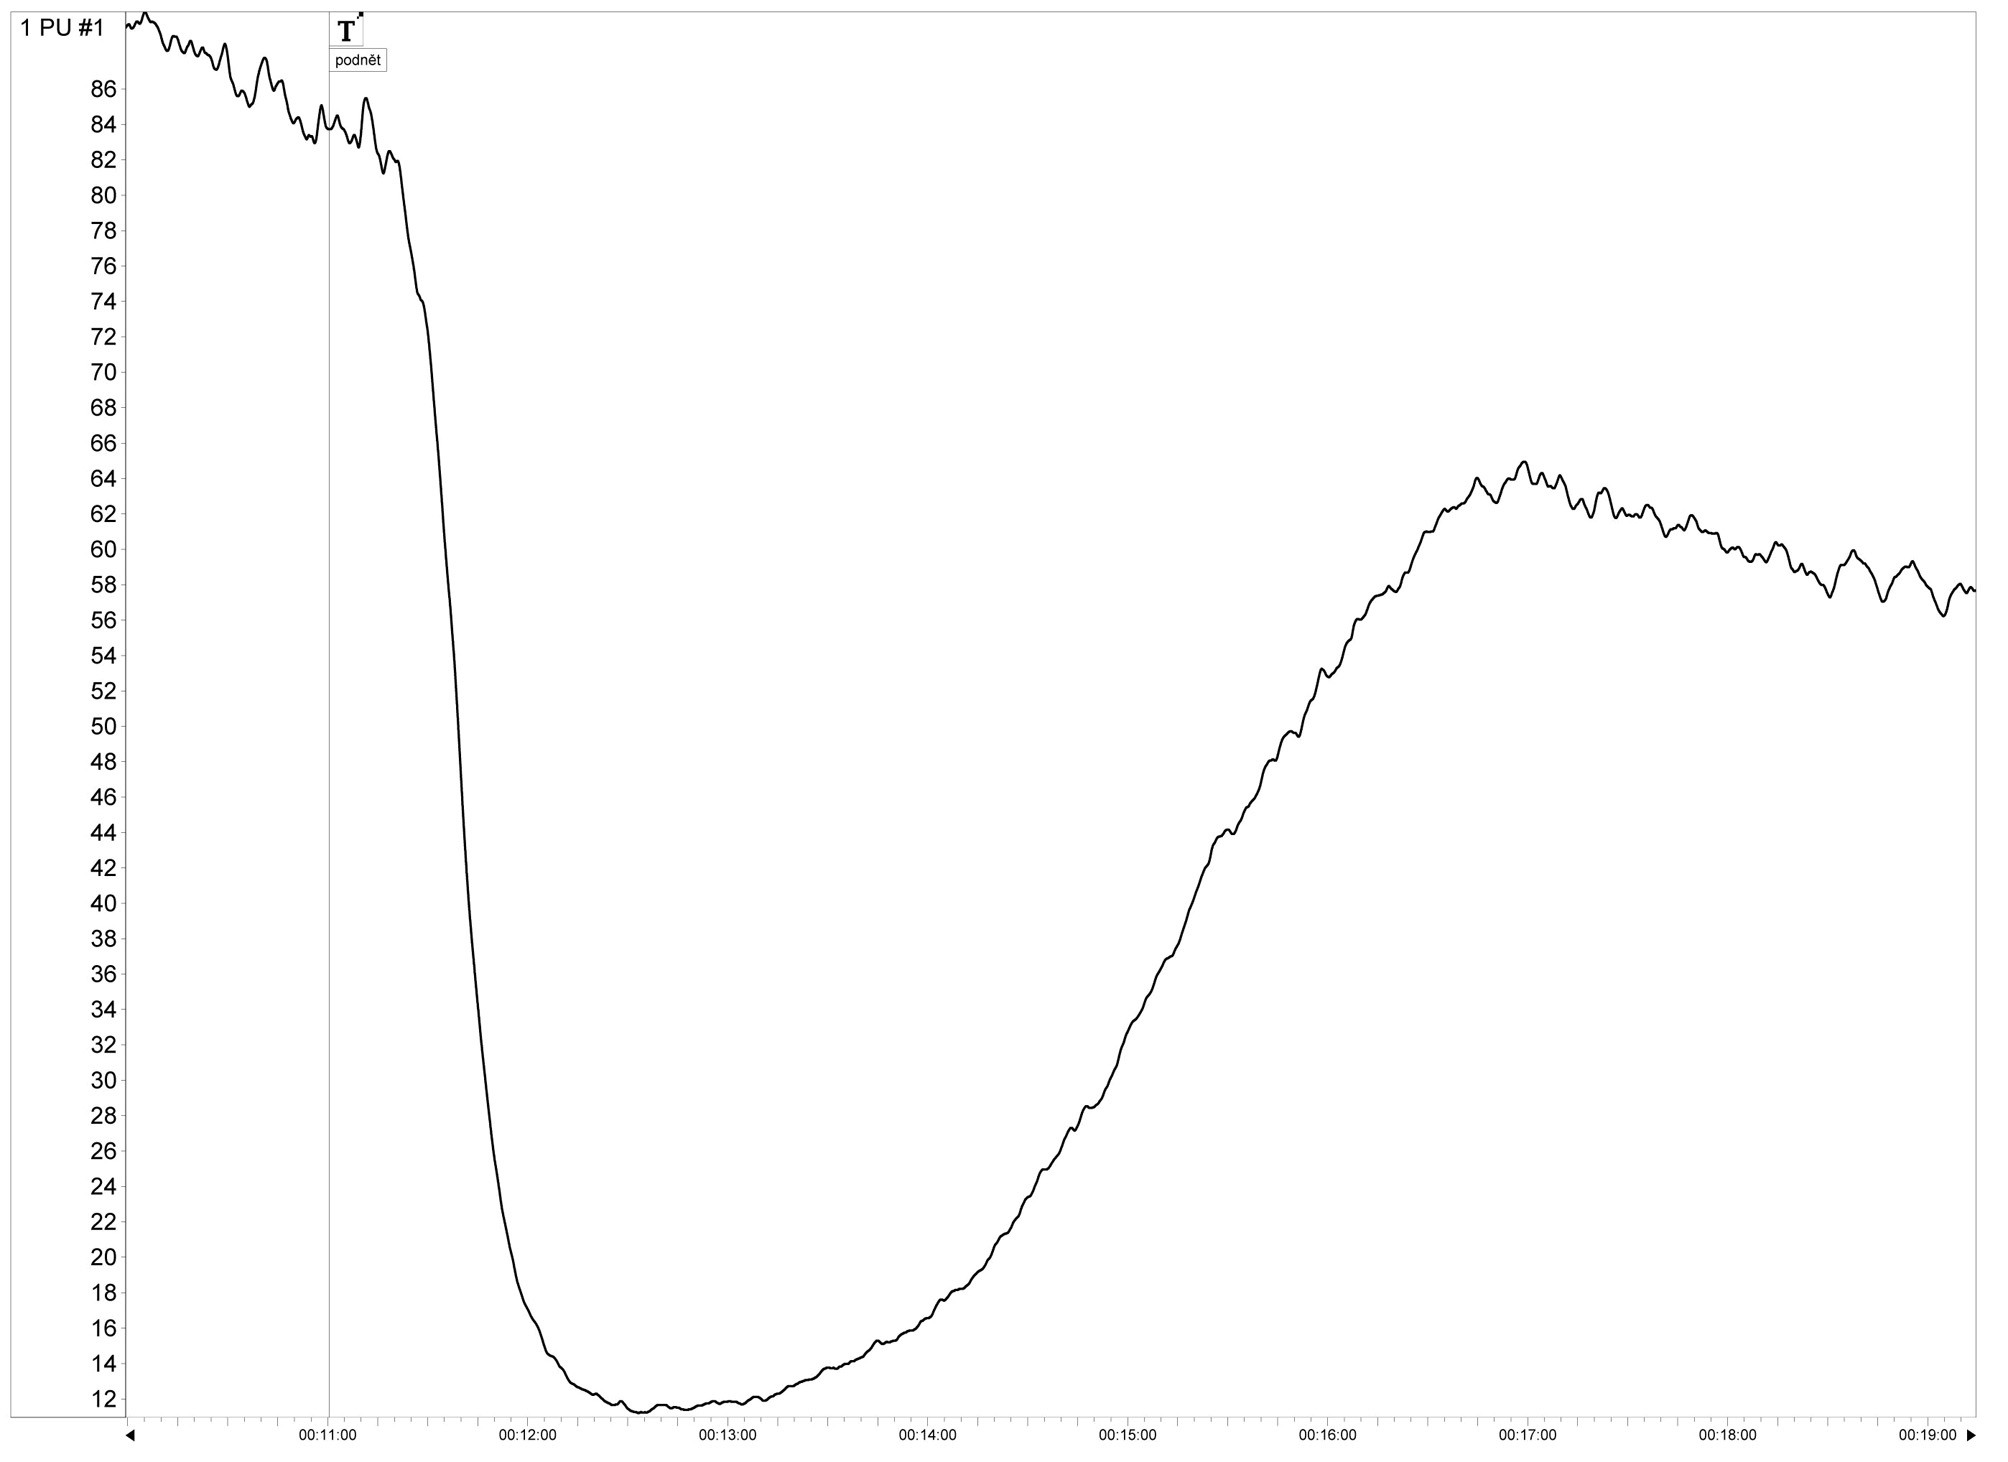 """Fig. 2. Example of the signal obtained by the laser-Doppler flowmeter. The marker """"T'"""" represents """"t=0"""" (time when the pedicle is bathed in blood). The graph shows the rapid decline signal amplitude (perfusion) caused by vasospasm"""